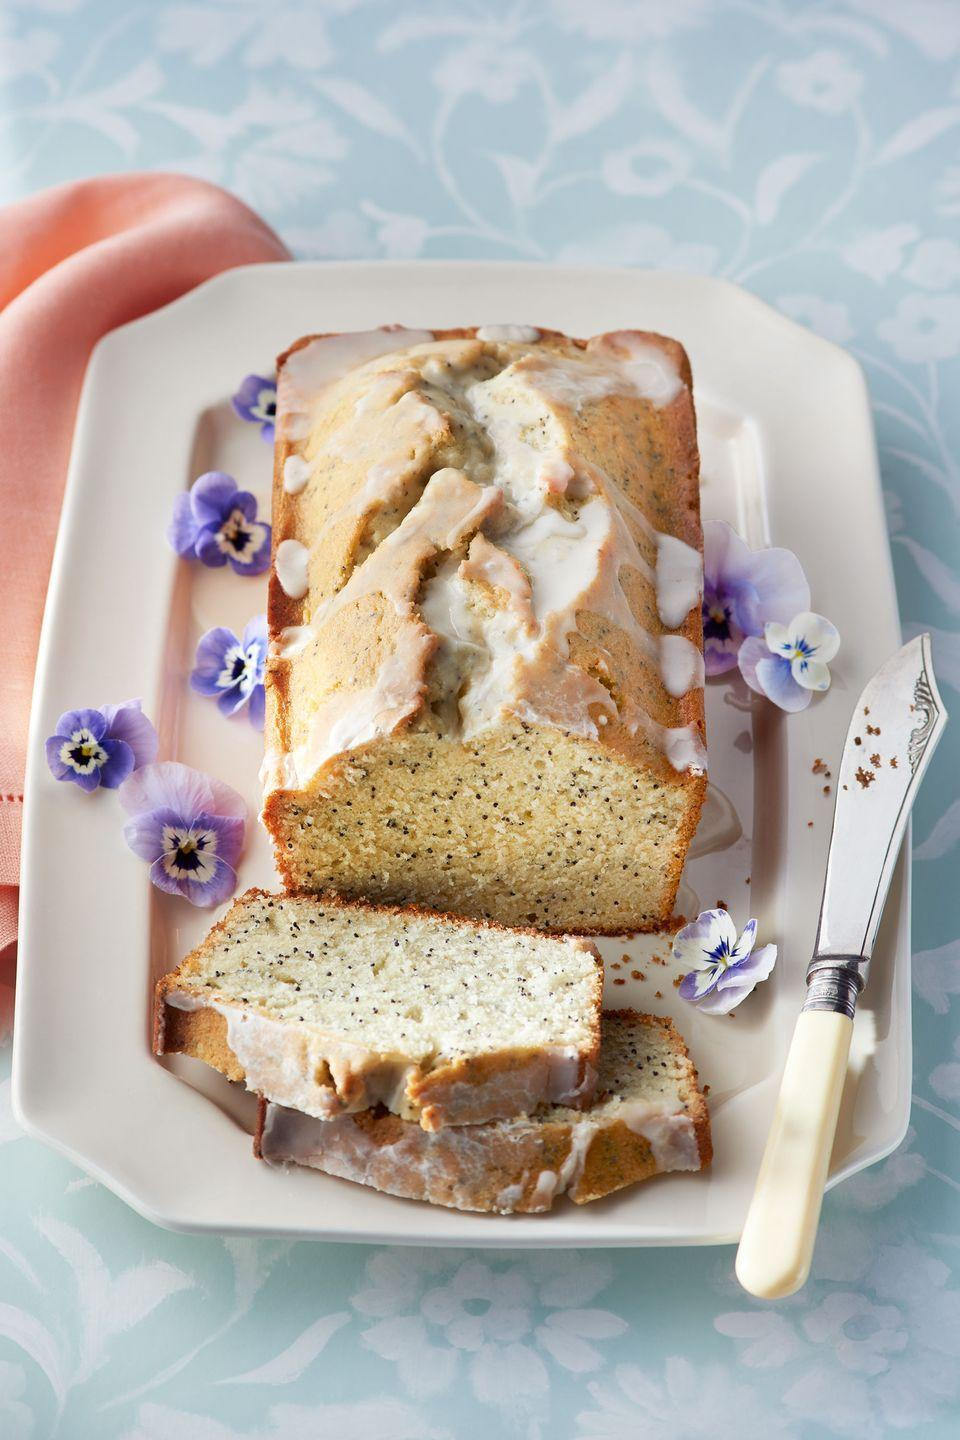 "<p>Things are about to get really exciting for your old loaf pan.</p><p><strong><a href=""https://www.countryliving.com/food-drinks/recipes/a37725/almond-and-poppy-seed-loaf-cake-recipe/"" rel=""nofollow noopener"" target=""_blank"" data-ylk=""slk:Get the recipe"" class=""link rapid-noclick-resp"">Get the recipe</a>.</strong></p>"